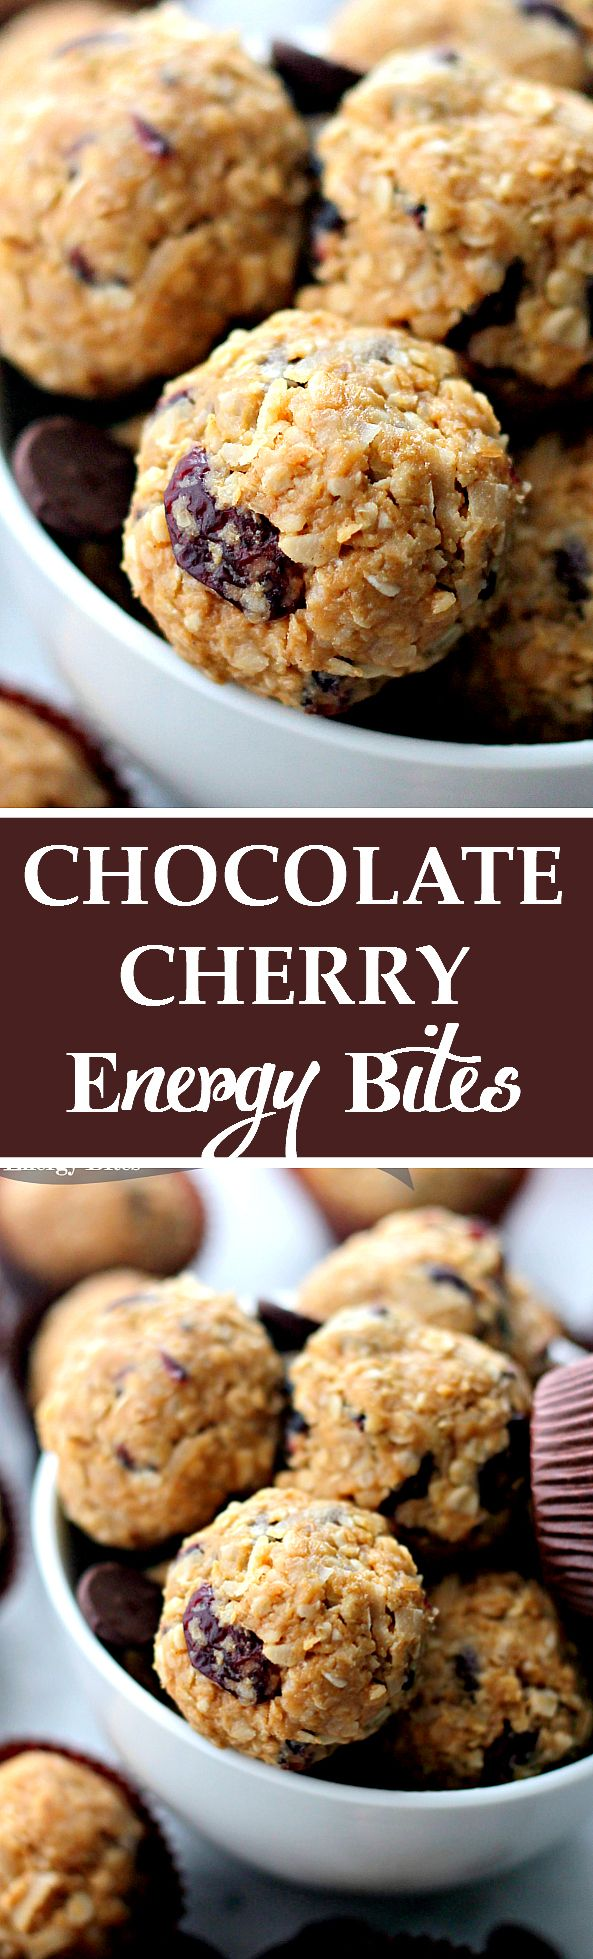 Studded with dried cherries and loaded with dark chocolate chips, these healthy cookie energy bites are sweet, delicious, and incredibly easy to make!